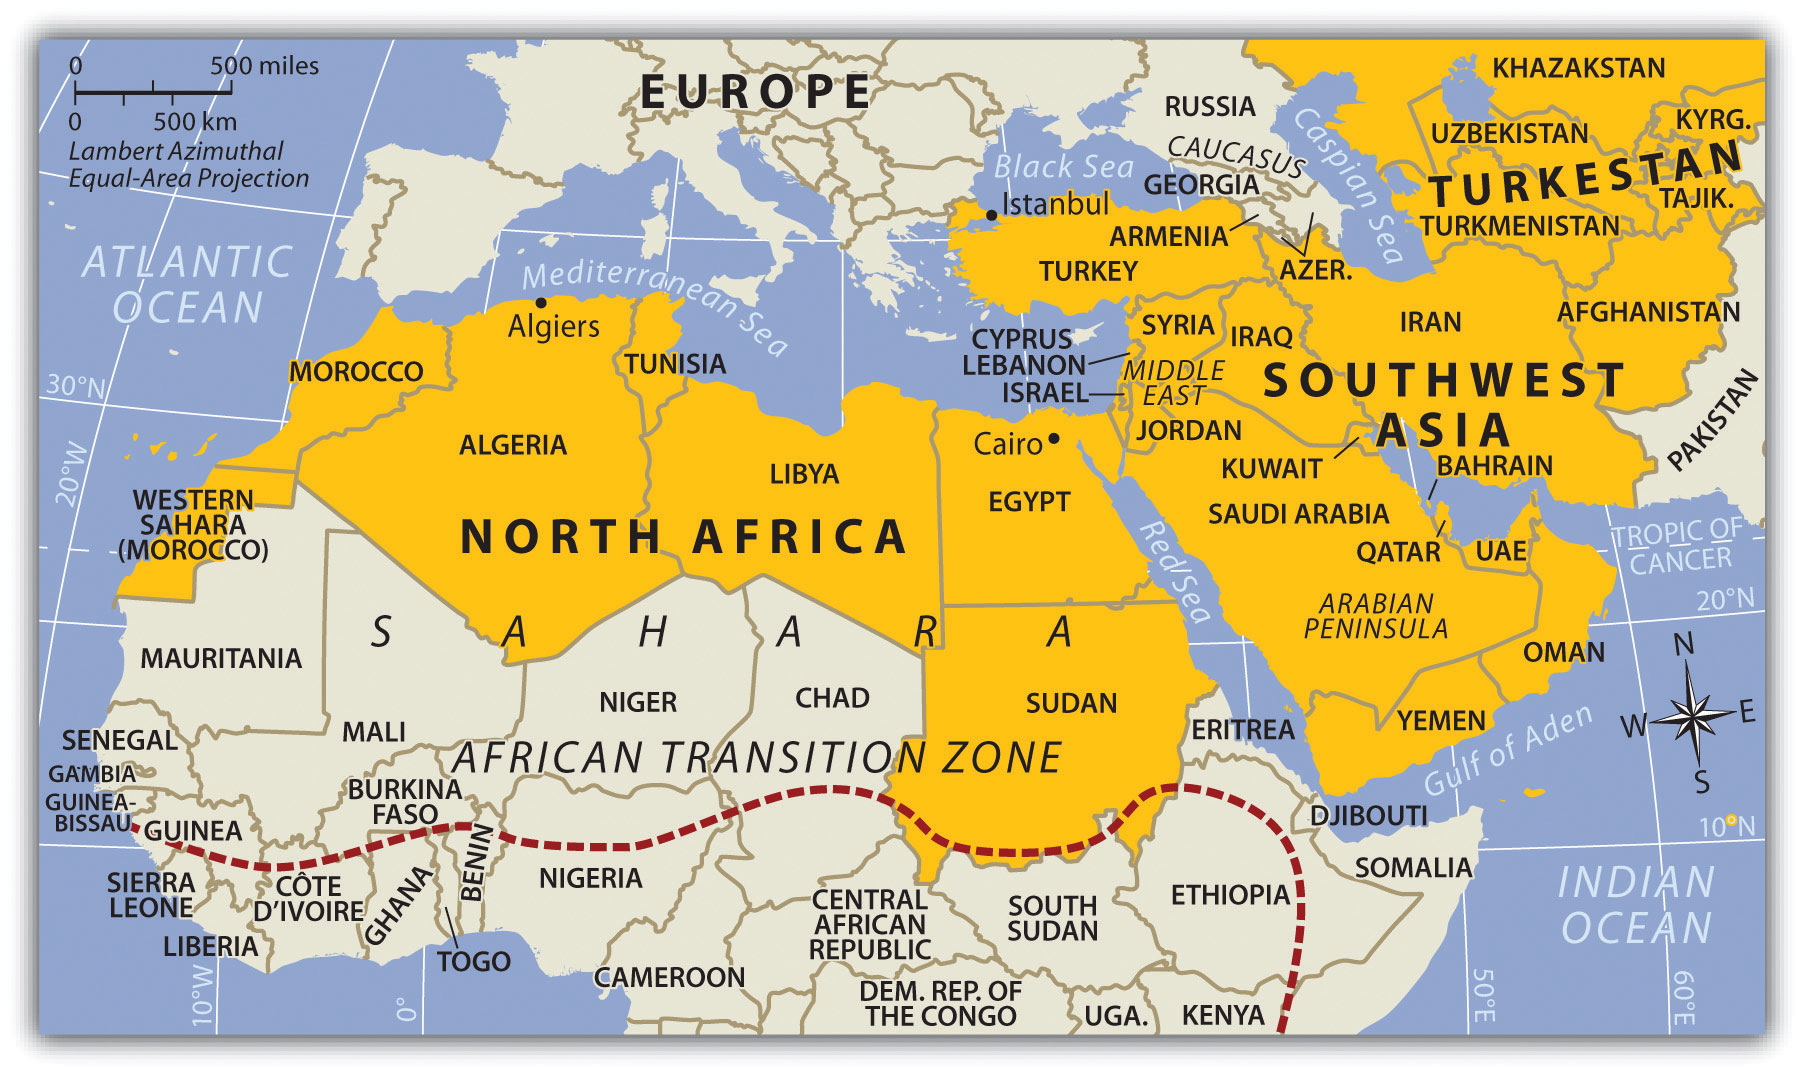 Southwest Asia And Africa Map ~ CINEMERGENTE